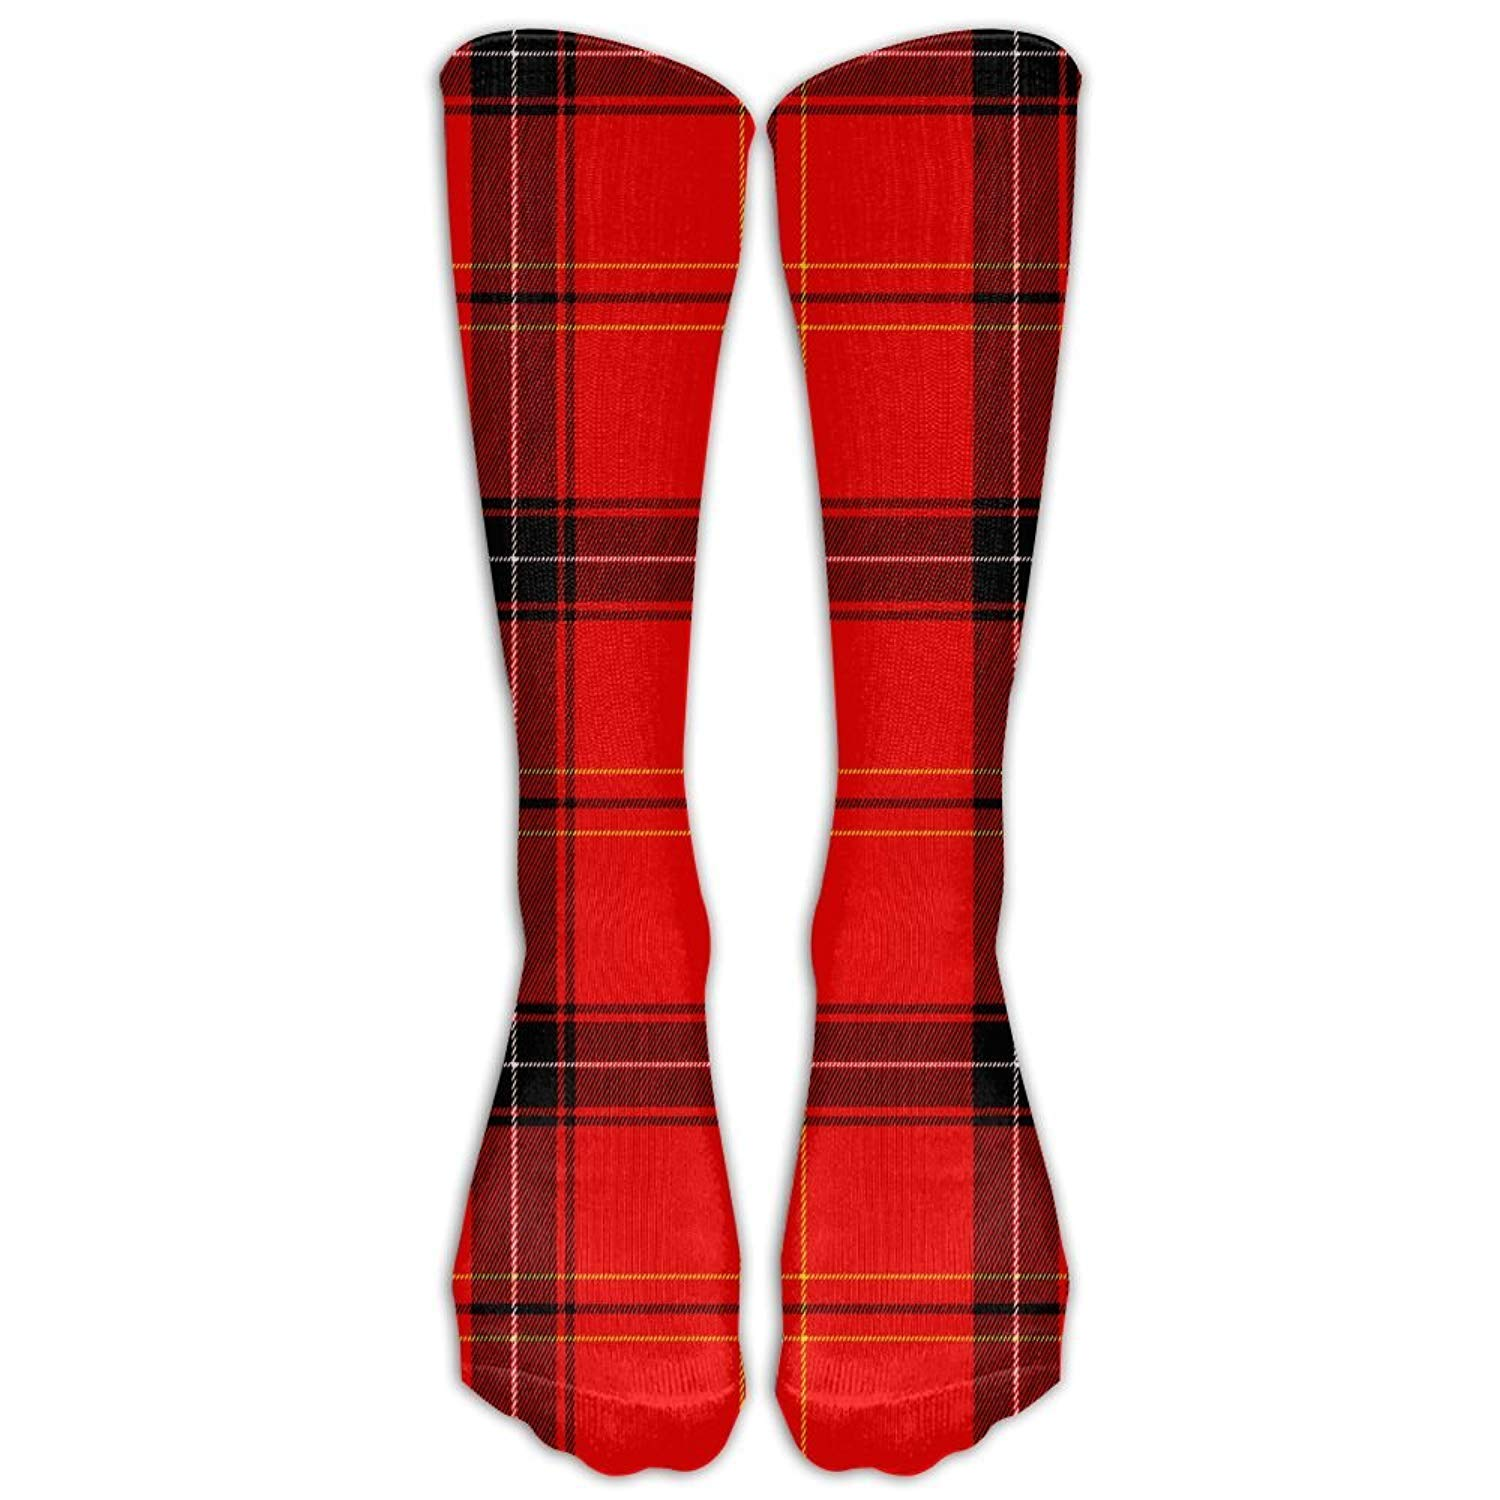 Retro Red Plaid Pattern Women's Crew Socks Over Knee High Stocking Girls Boots Long Socks